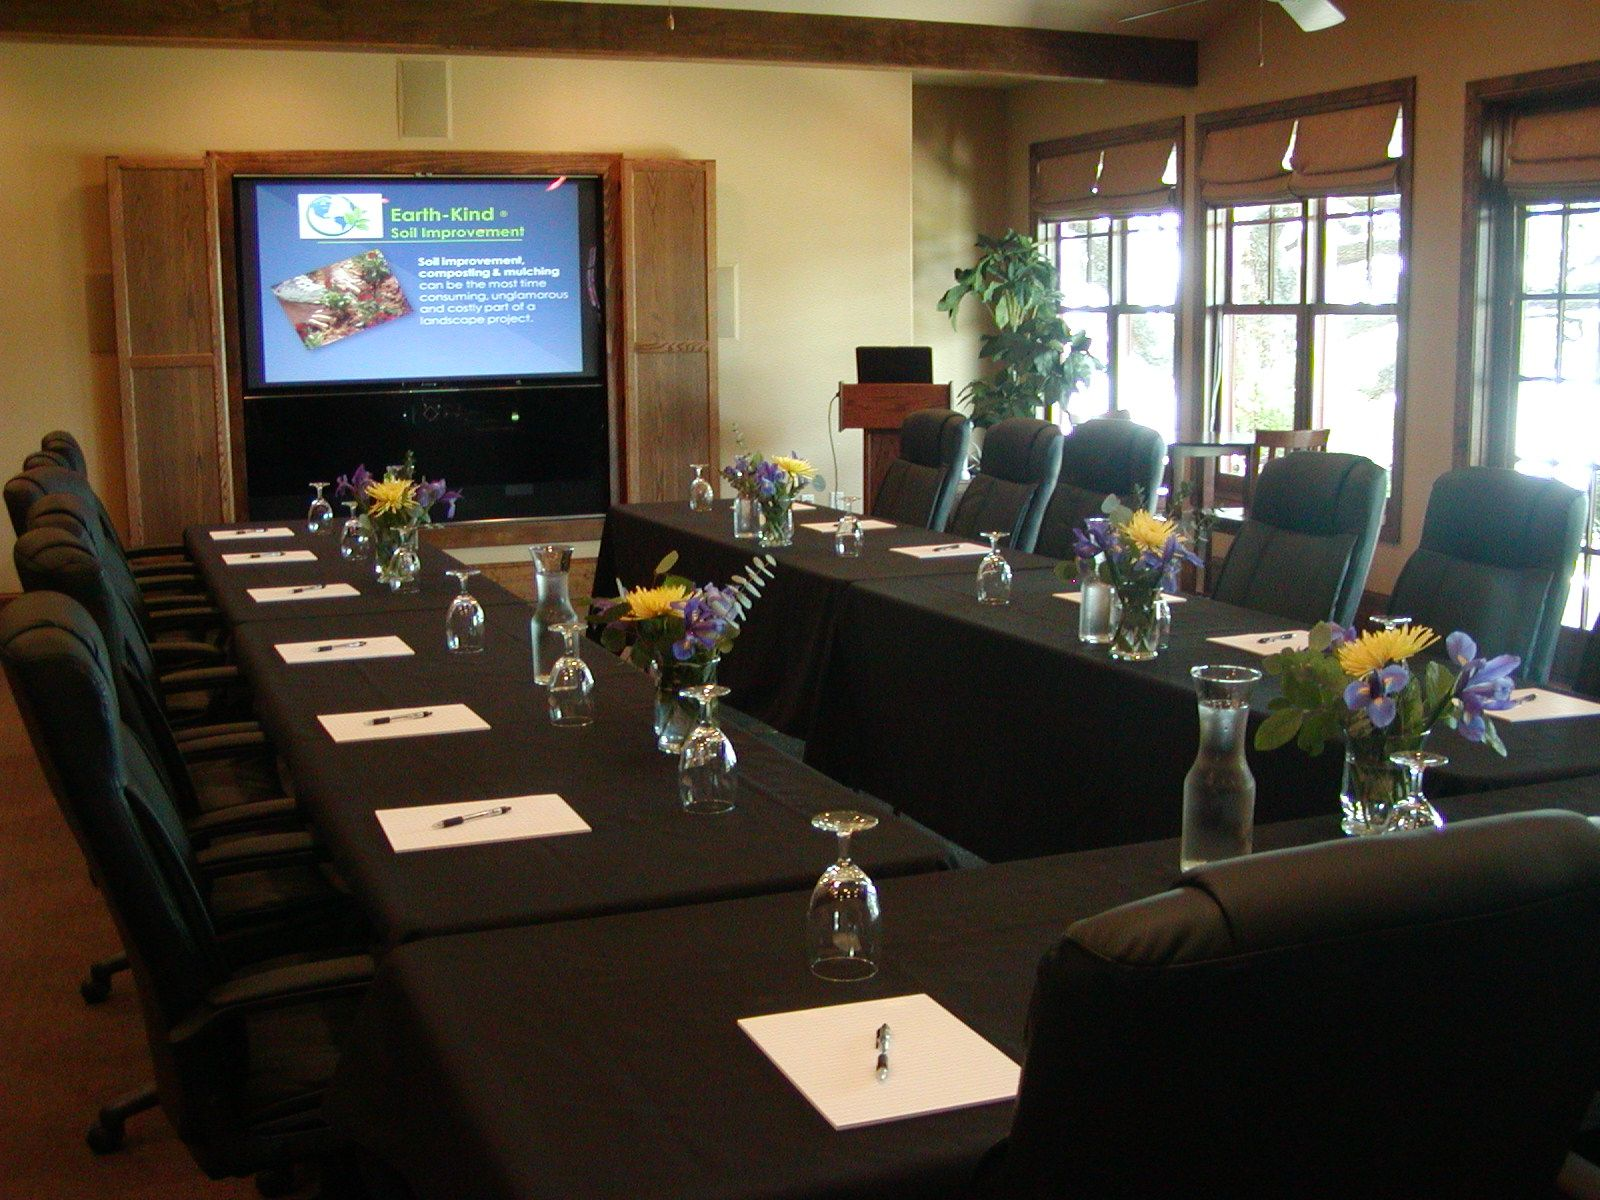 Our Spacious Conference Room Has The Capacity For Up To 50 Or More